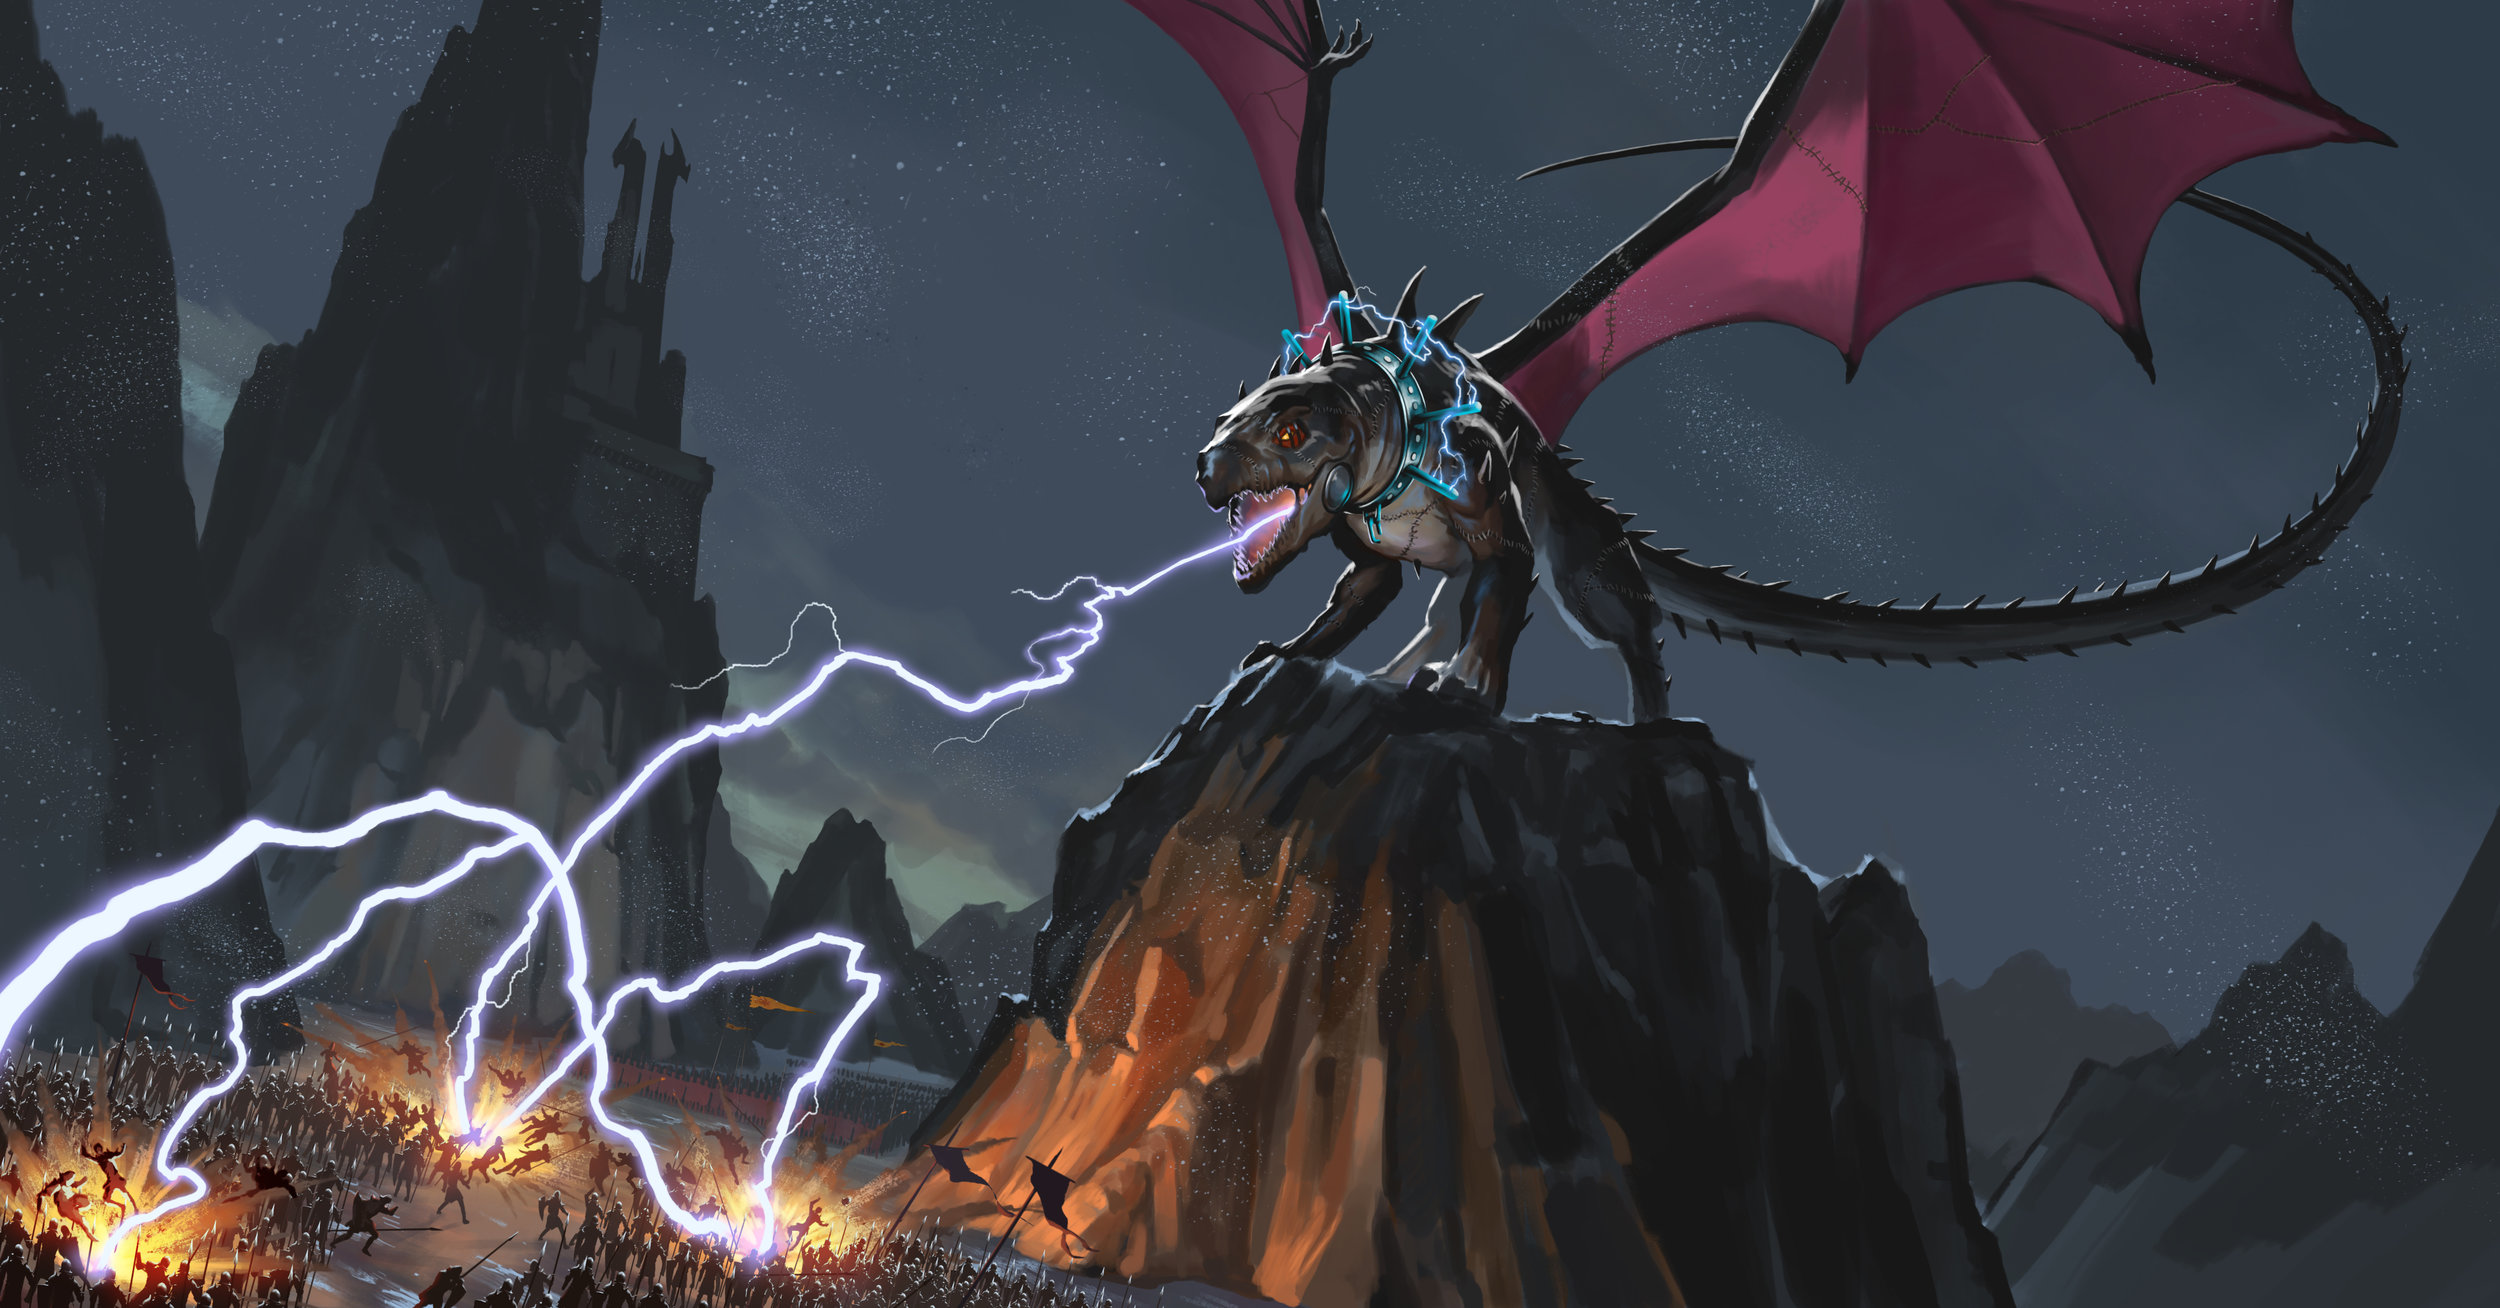 WD_Collection_DragonLightningBreath_v1_1200x628.jpg